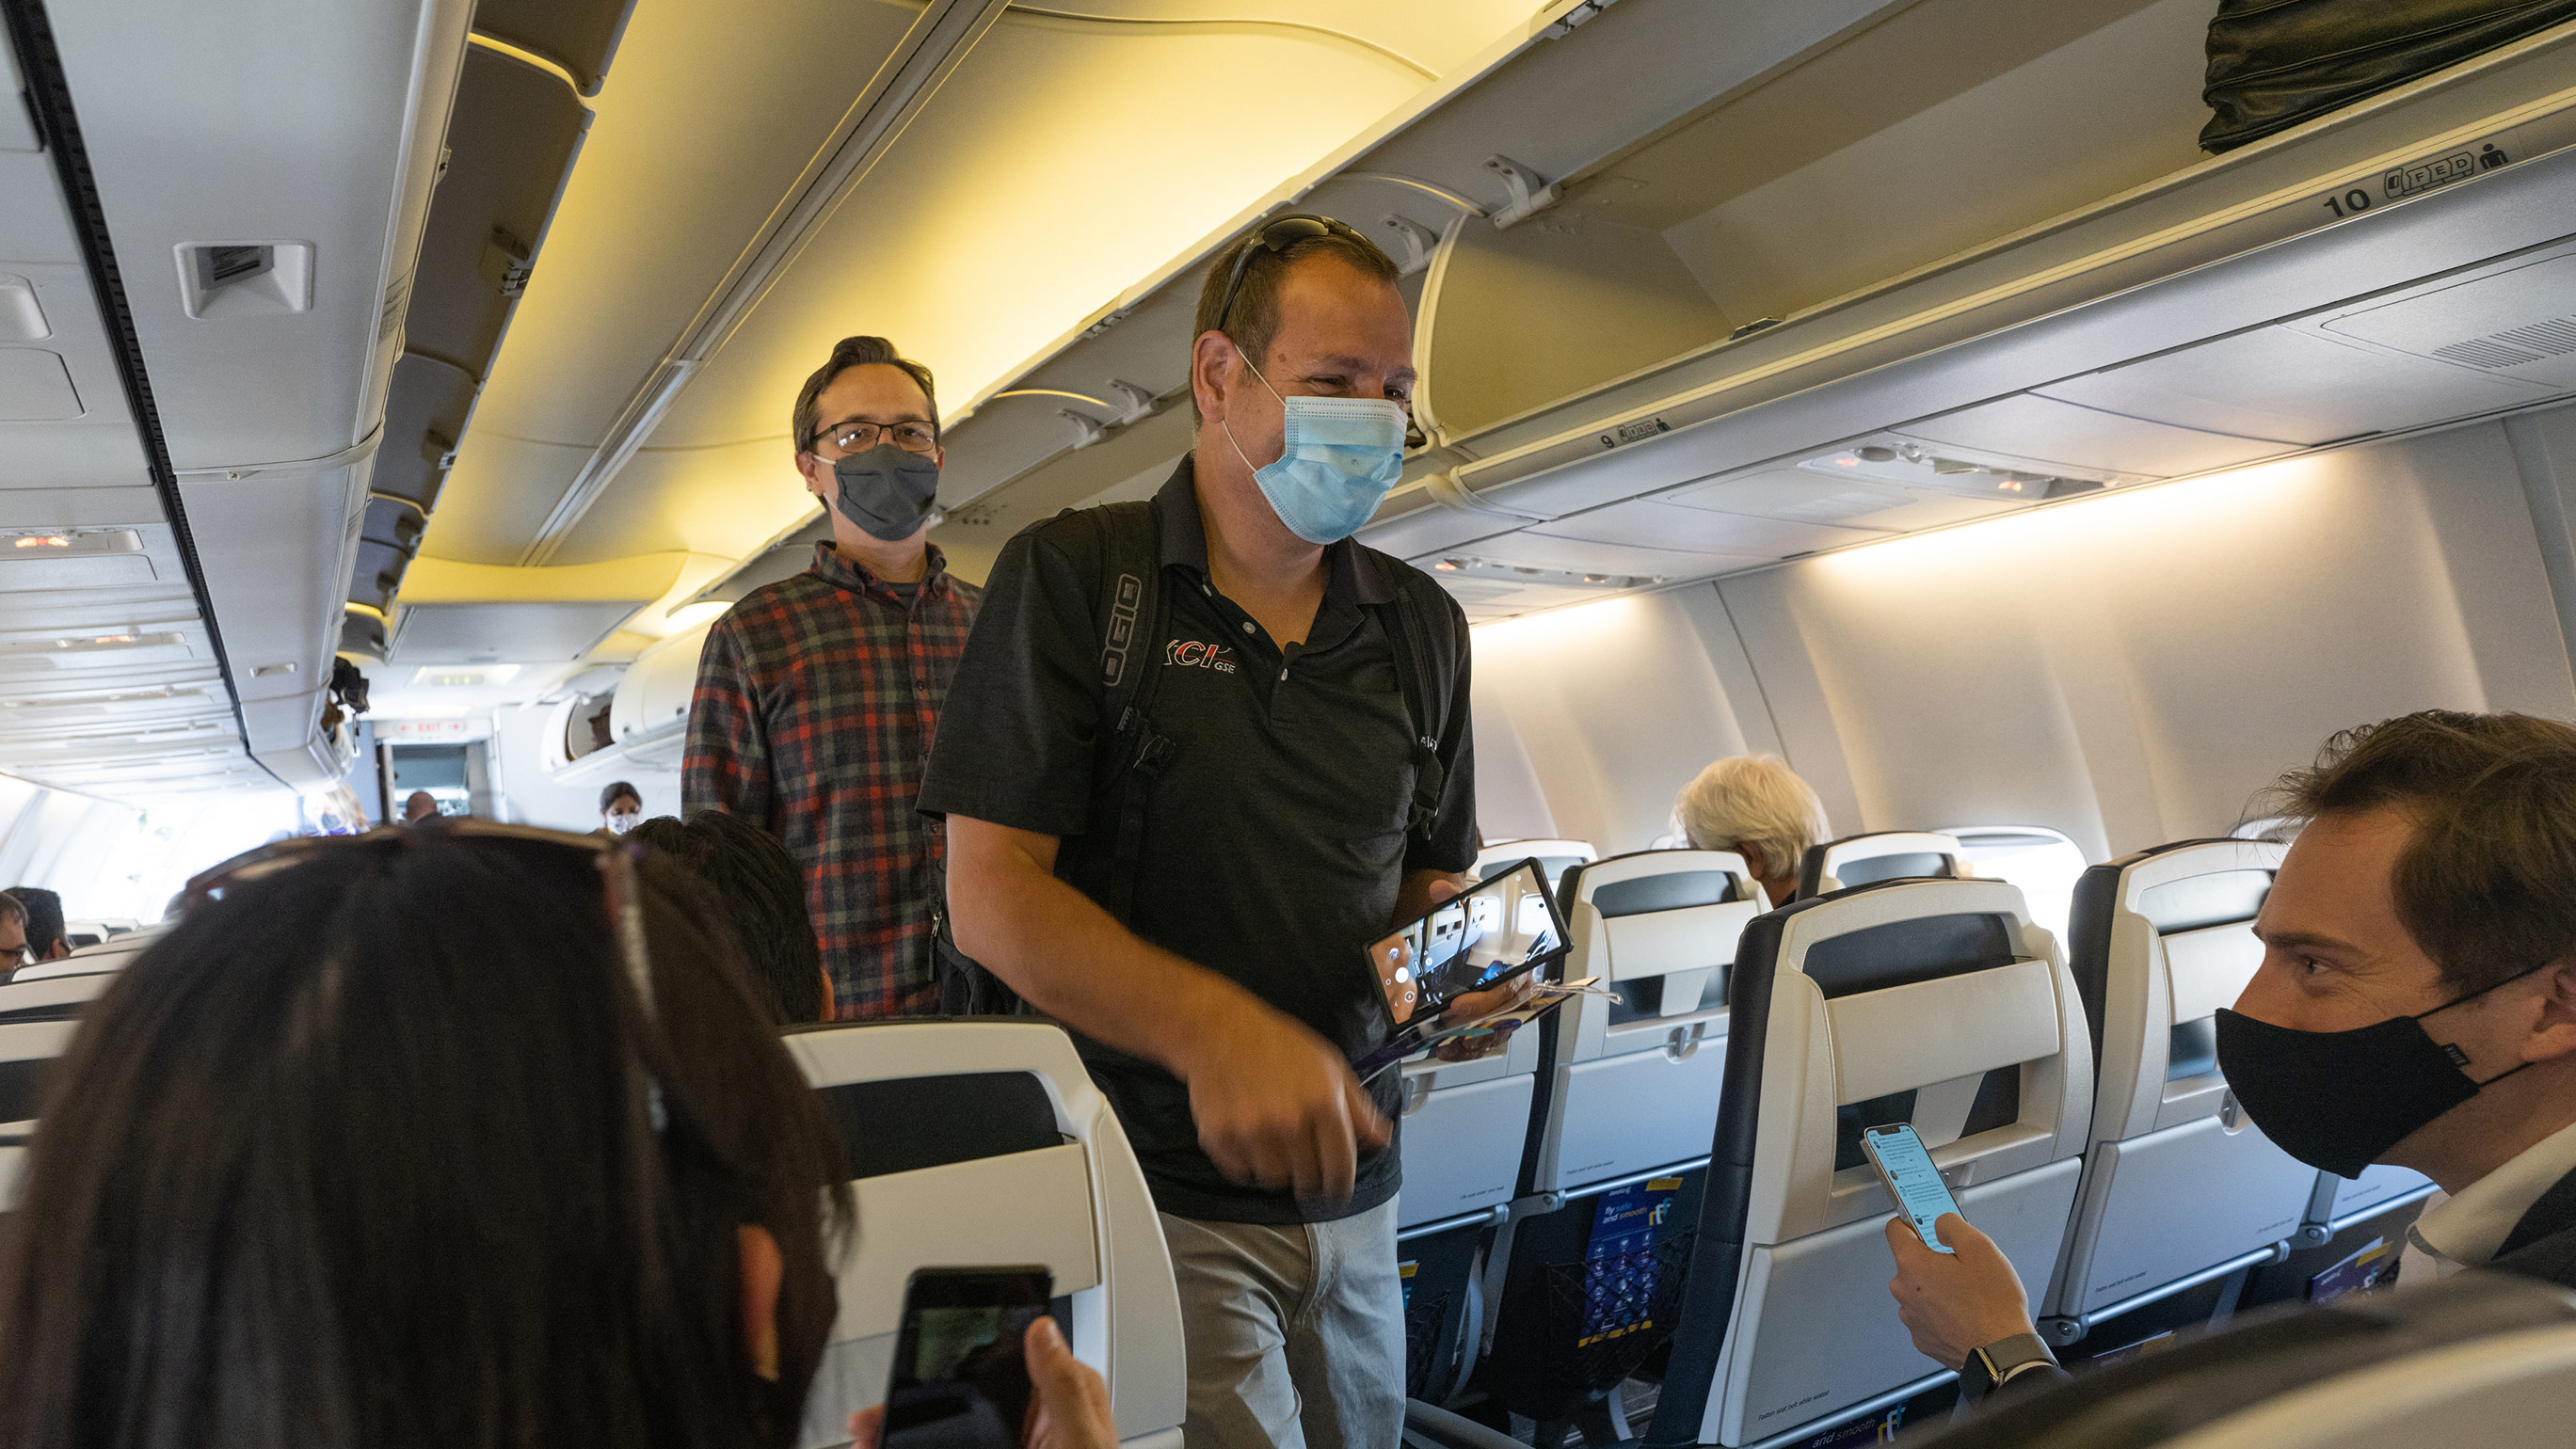 Passengers wearing protective masks masks board an Avelo Airlines flight at Hollywood Burbank Airport on Wednesday, April 28, in Burbank, California.